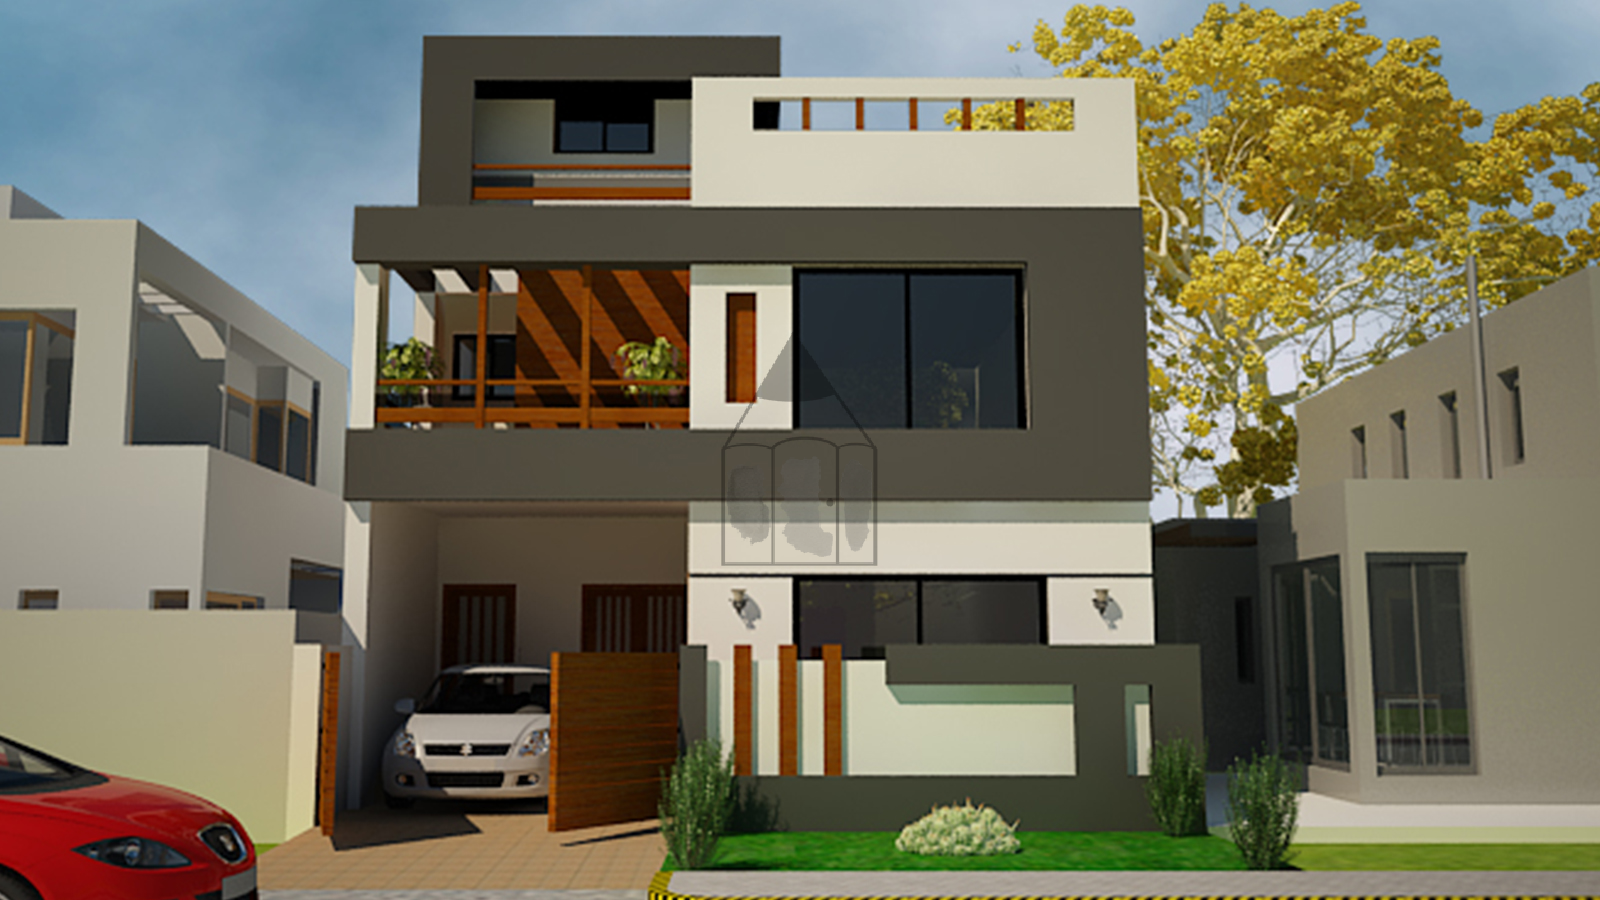 5 marla house front design ashfaq for House front design